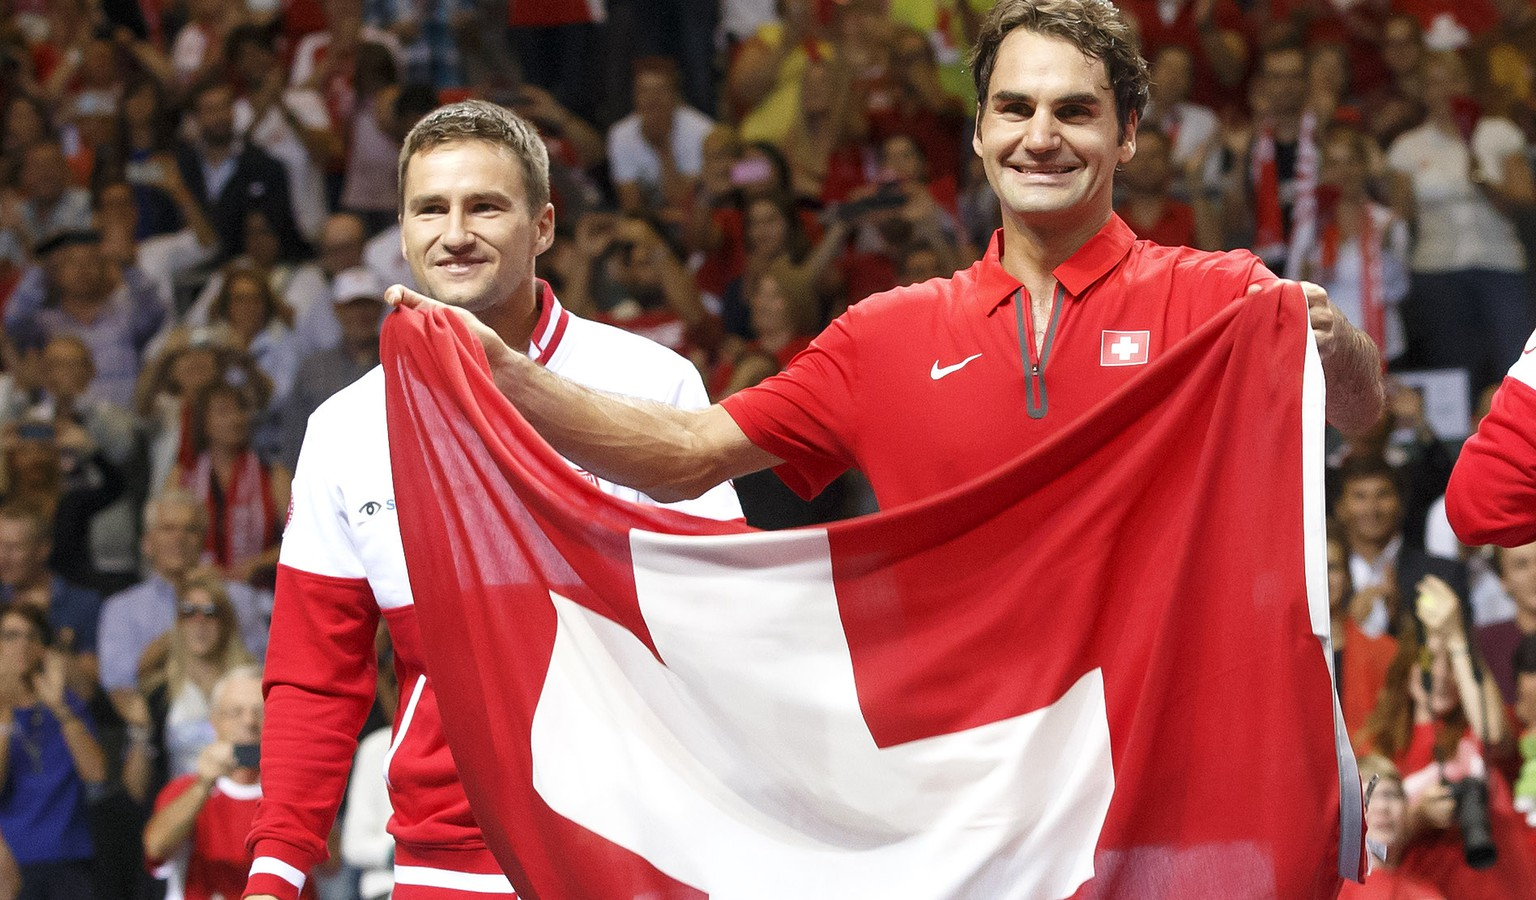 Roger Federer, right, of Switzerland, celebrates next to his teammate Marco Chiudinelli, left, with a Swiss flag after beating the Italy, at the Davis Cup World Group Semifinal match between Switzerland and Italy, at Palexpo, in Geneva, Switzerland, Sunday, September 14, 2014. (KEYSTONE/Salvatore Di Nolfi)